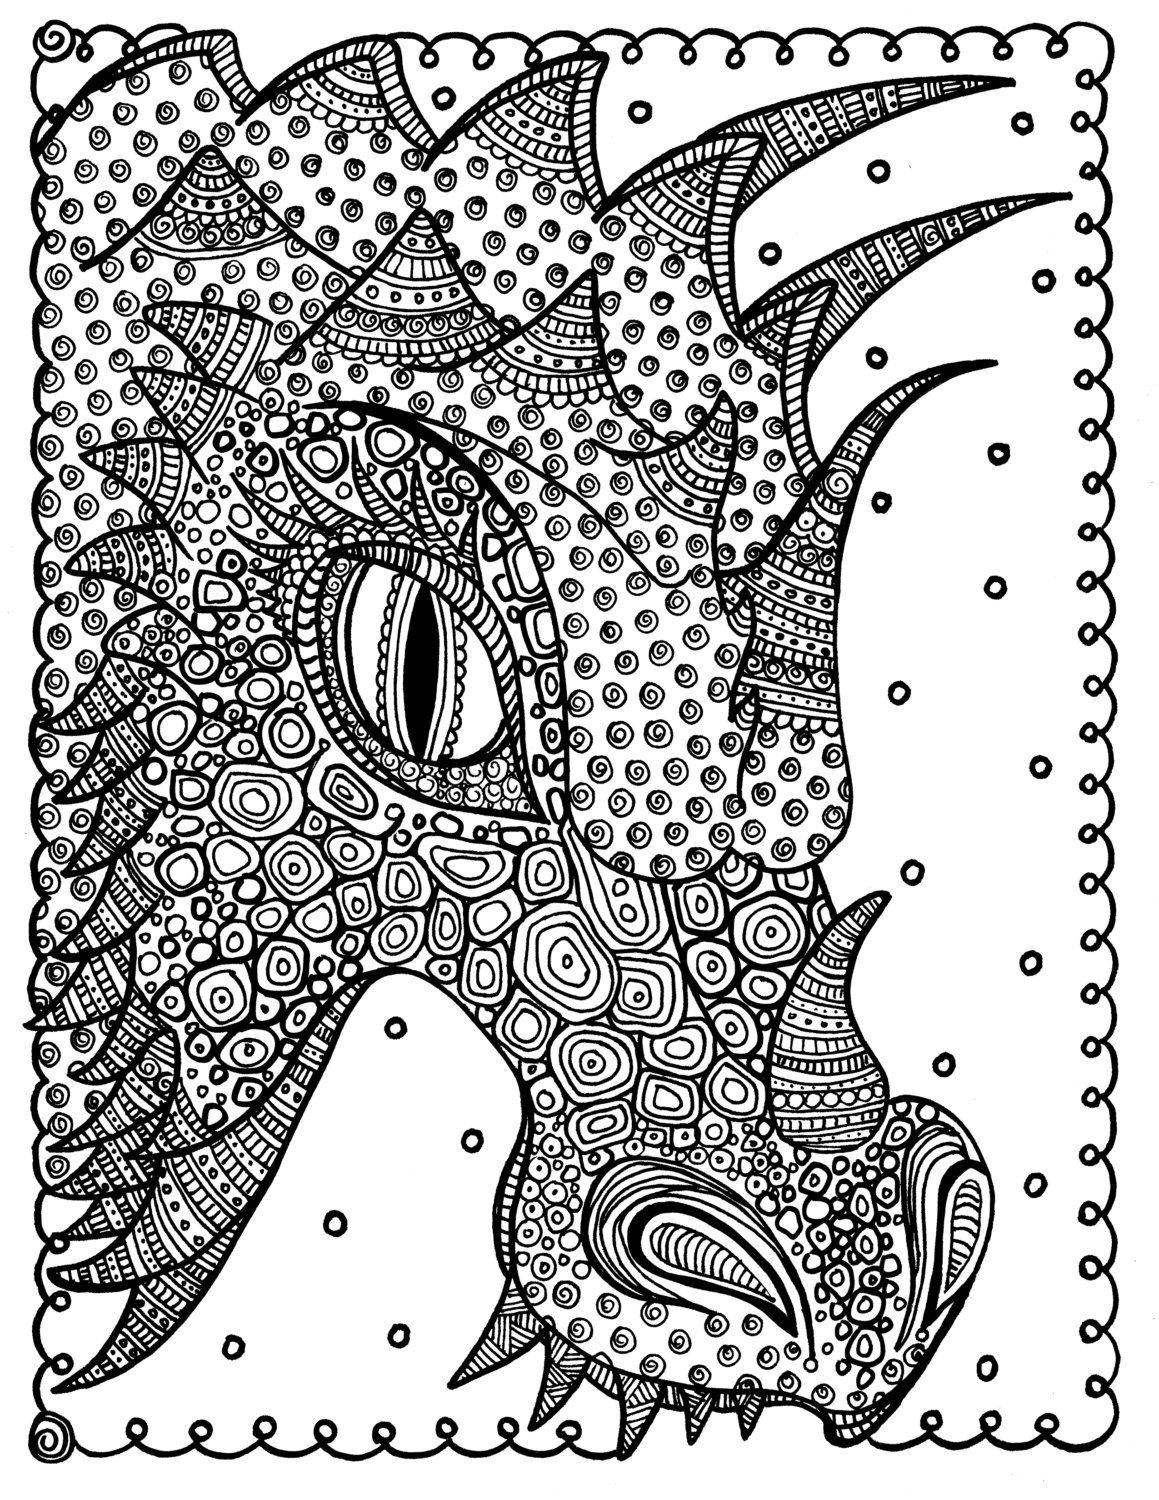 5 Pages Instant Download Dragons 5 Pictures To Color Fantasy Etsy Coloring Pages Dragon Coloring Page Coloring Books